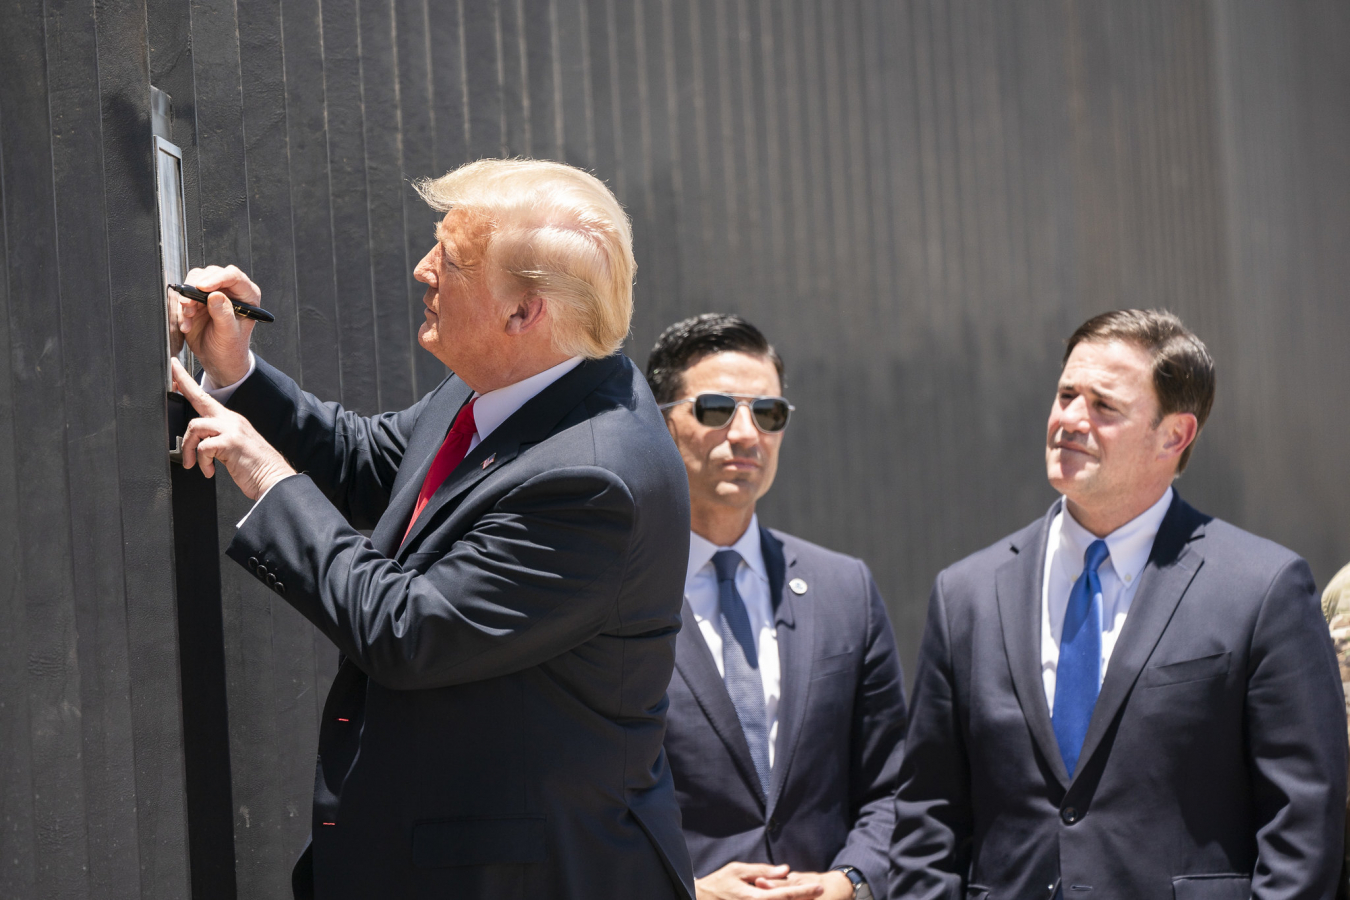 President Donald J. Trump signs a plaque Tuesday, June 23, 2020, commemorating the 200th mile of new border wall along the U.S.-Mexico border.